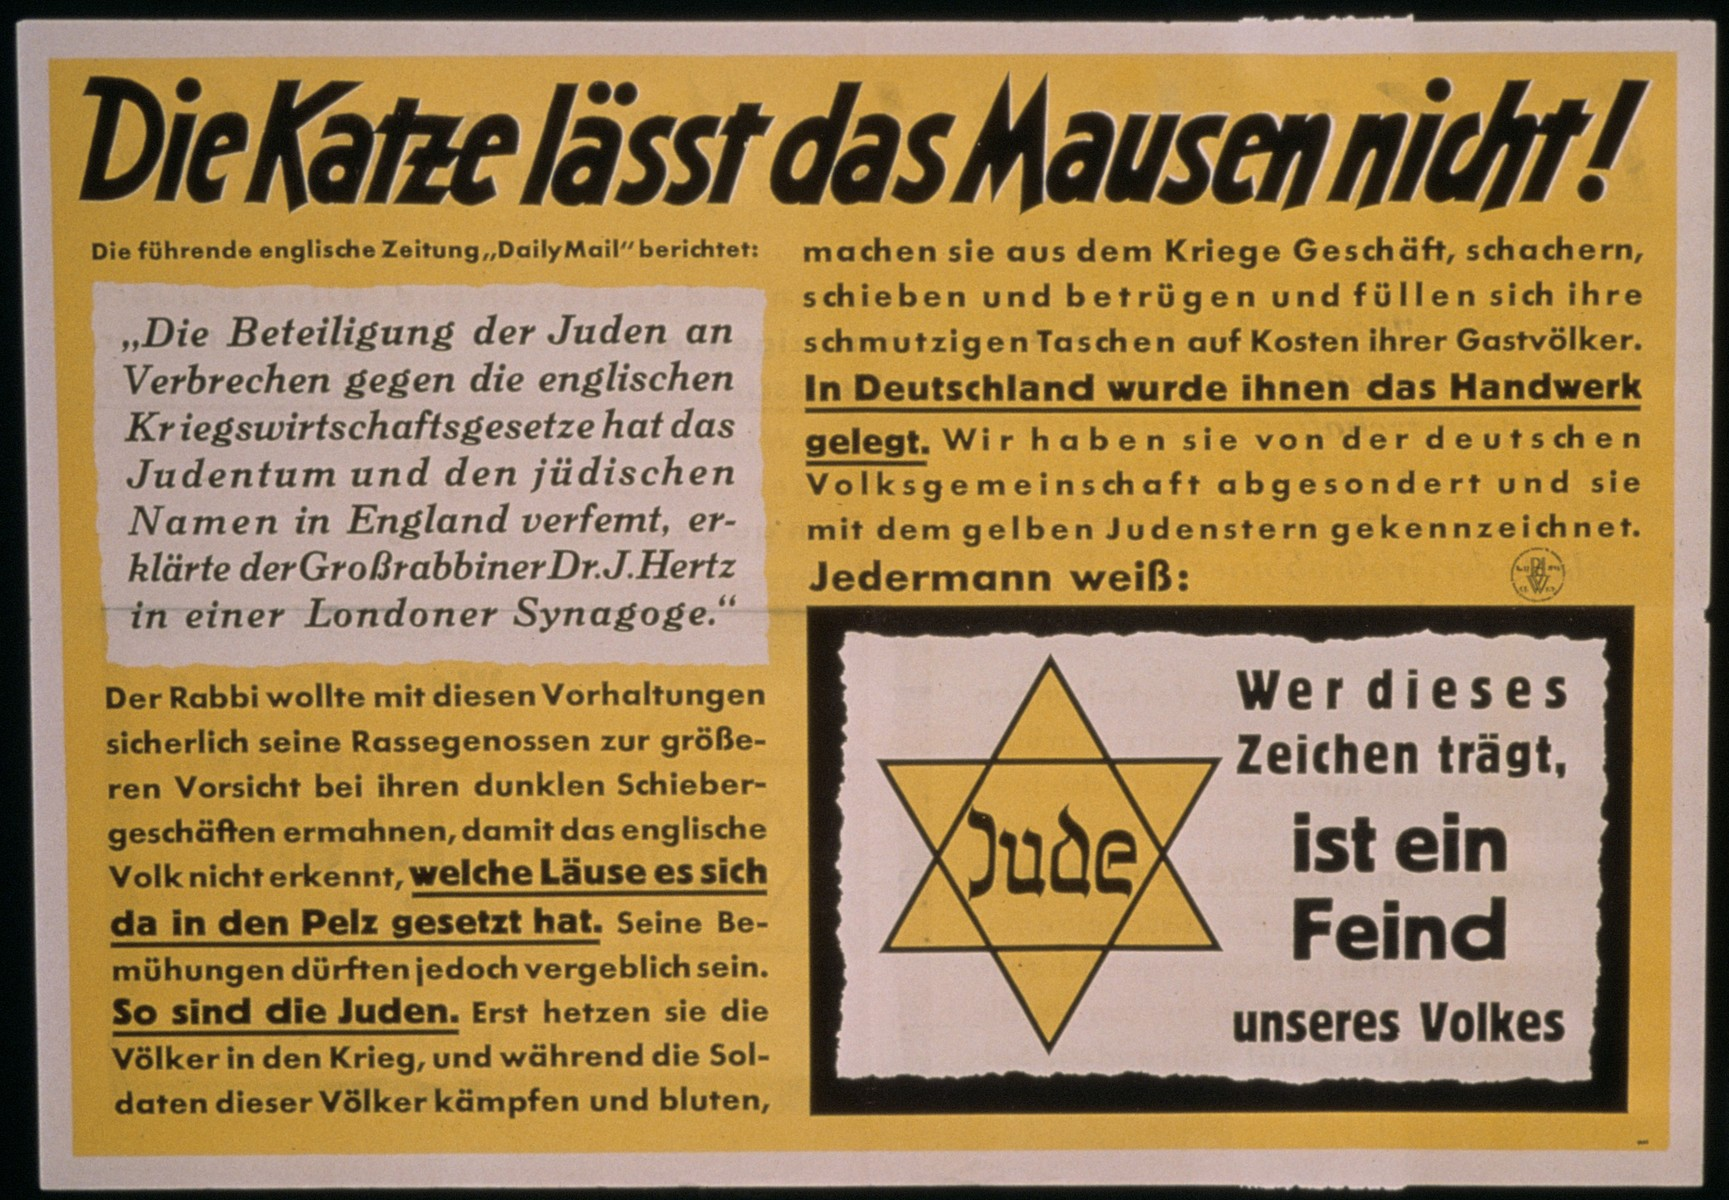 "An antisemitic Nazi propaganda poster entitled, ""The cats will not let the mice be!""   Jews are defined as the enemy of the German people.  The smaller sign at the lower left reads:  ""Whoever wears this badge is an enemy of our people.""  In the text at the upper left is a quotation from a statement made by Chief Rabbi Hertz of London about the harm done by British Jews who engage in illegal war profiteering."